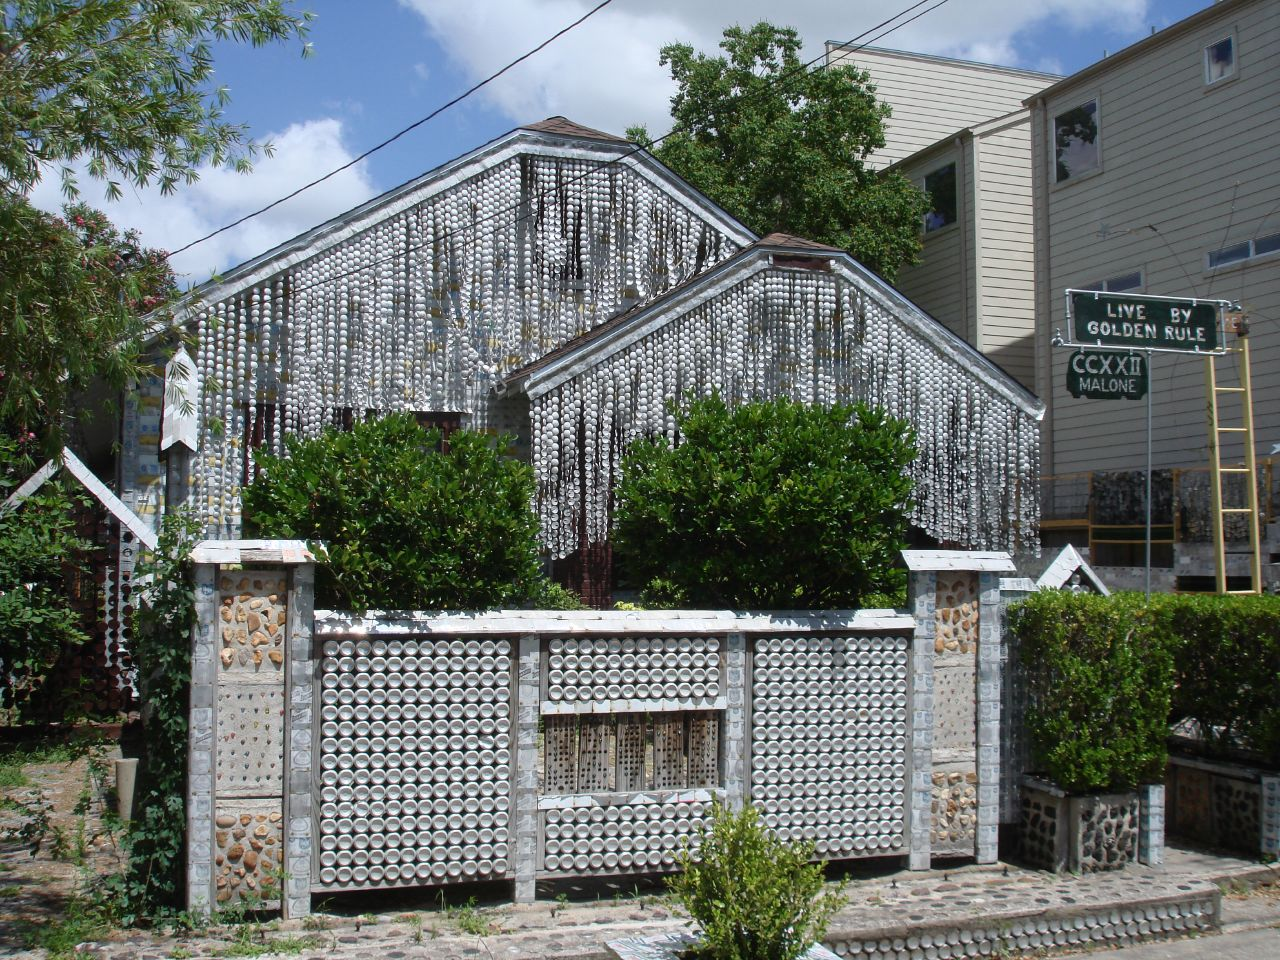 The Beer Can House